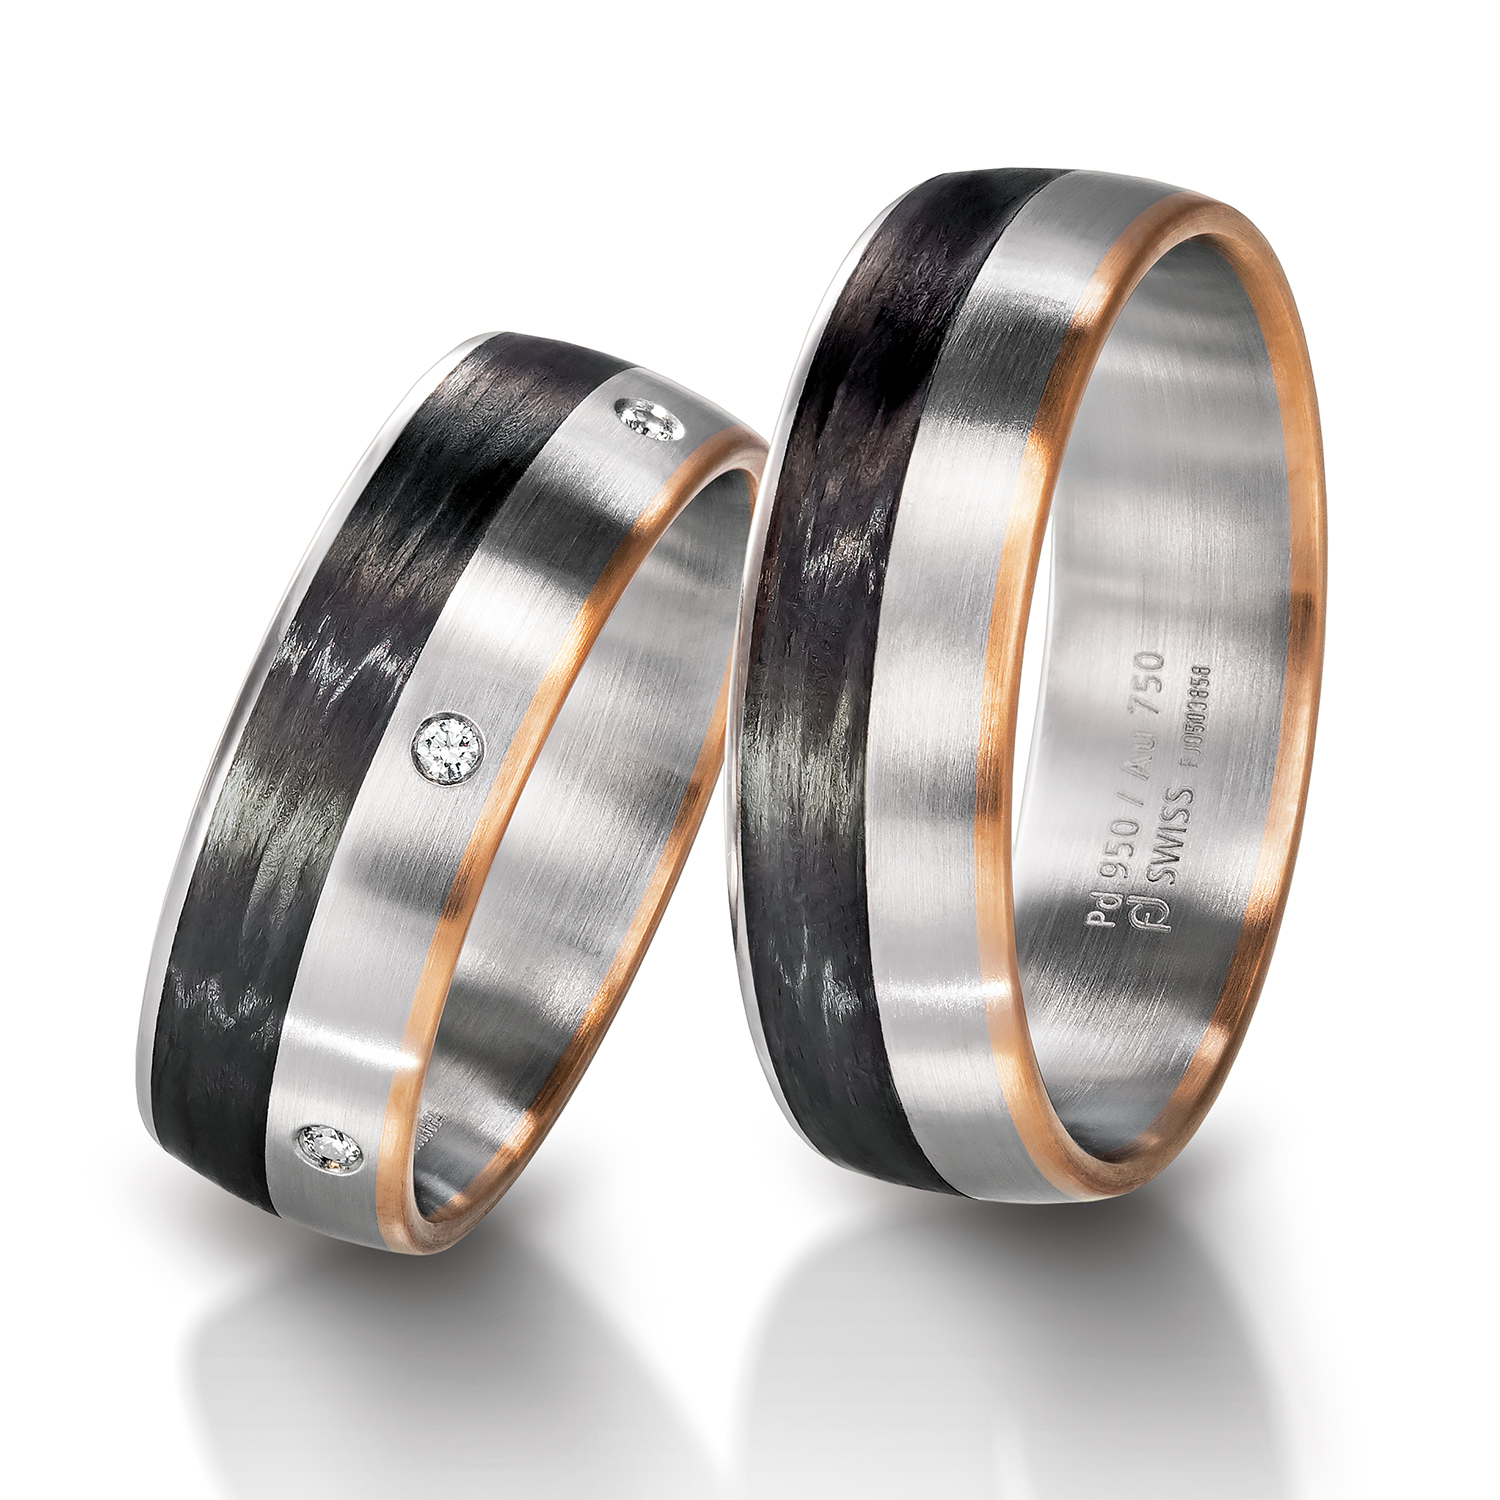 Rings in gold, platinum, palladium, carbon and black with diamonds Furrer Jacot